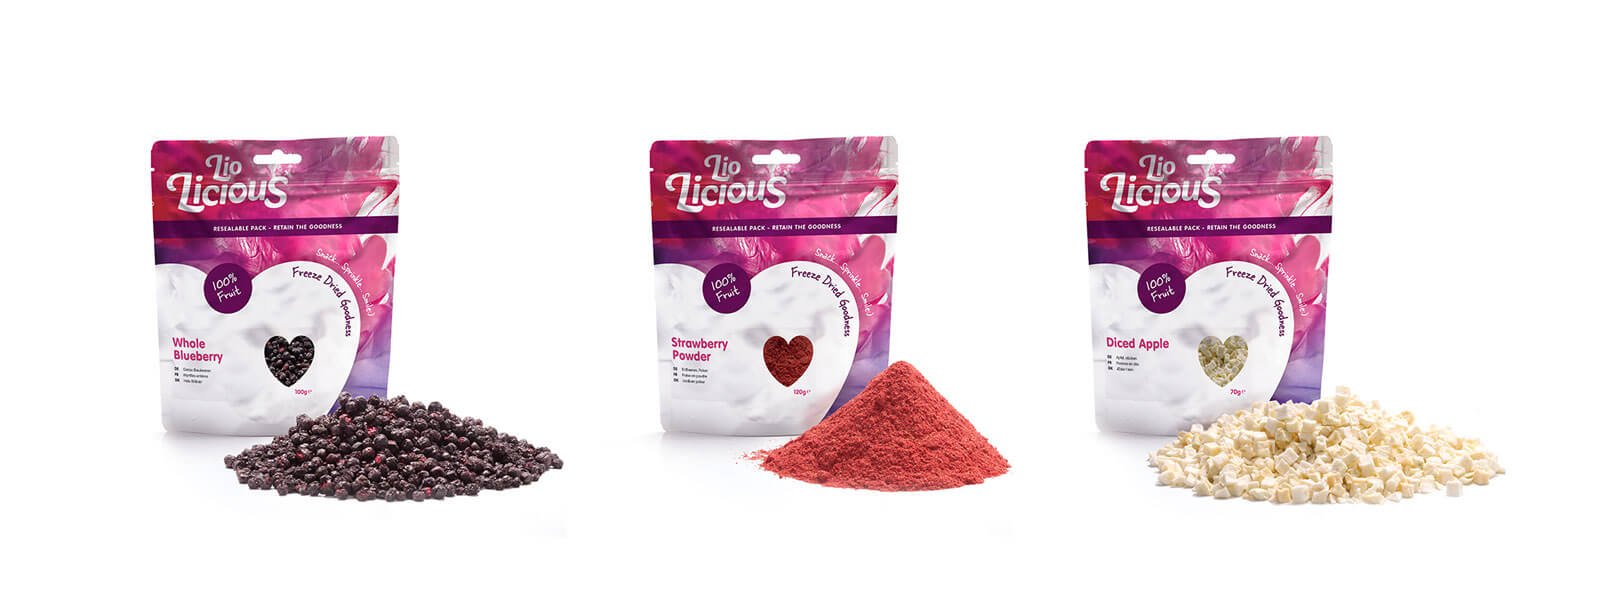 New Lio-Licious Packaging